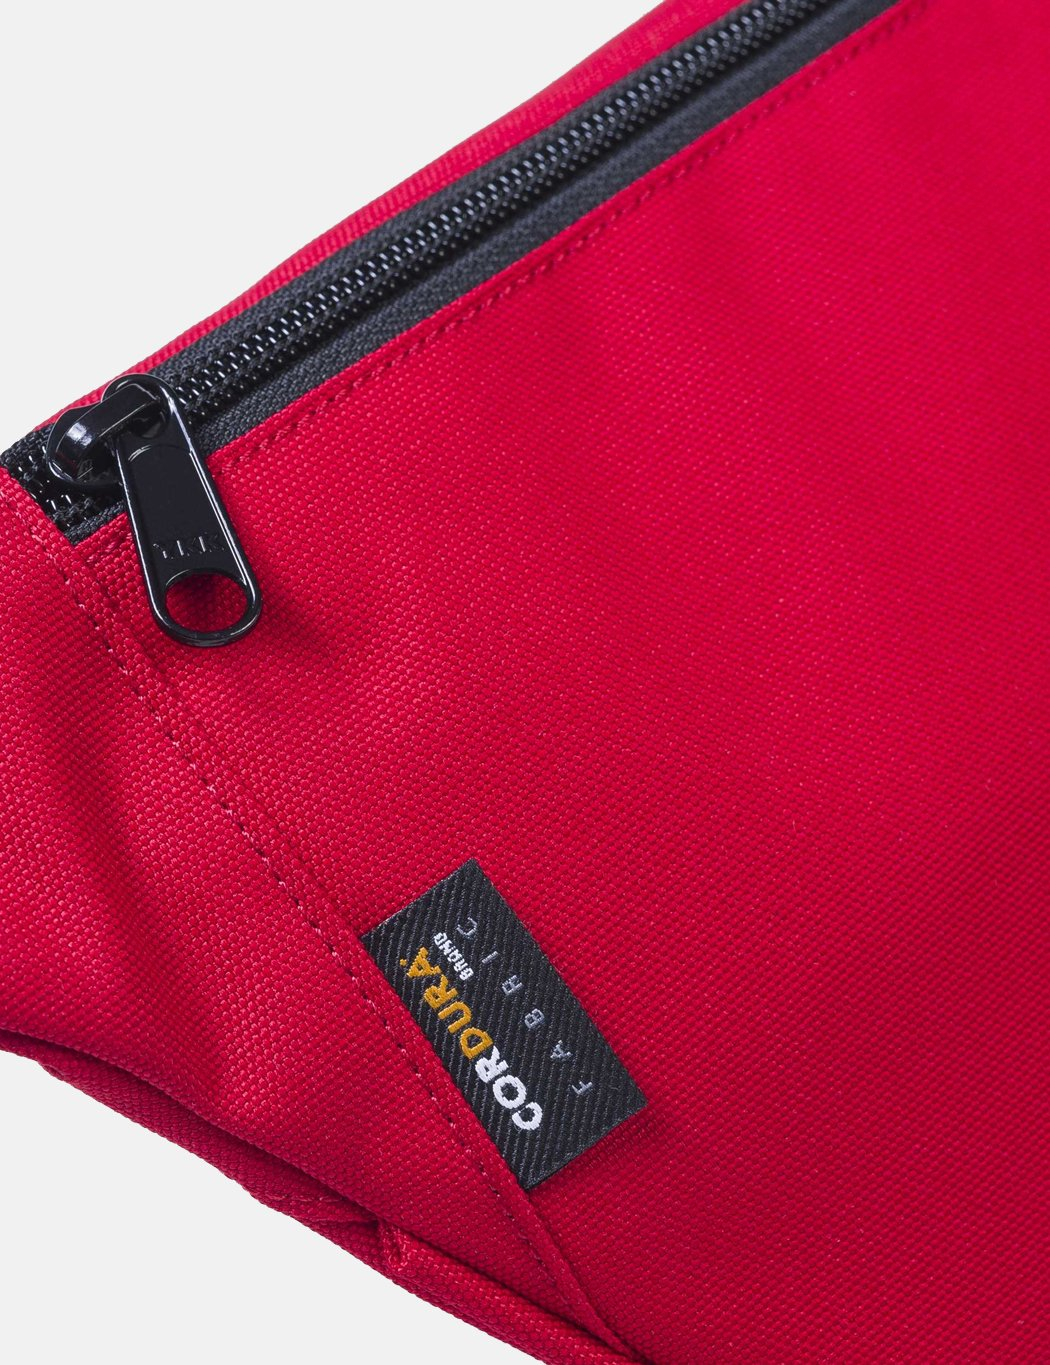 Carhartt-WIP Payton Hip Bag - Cardinal Red